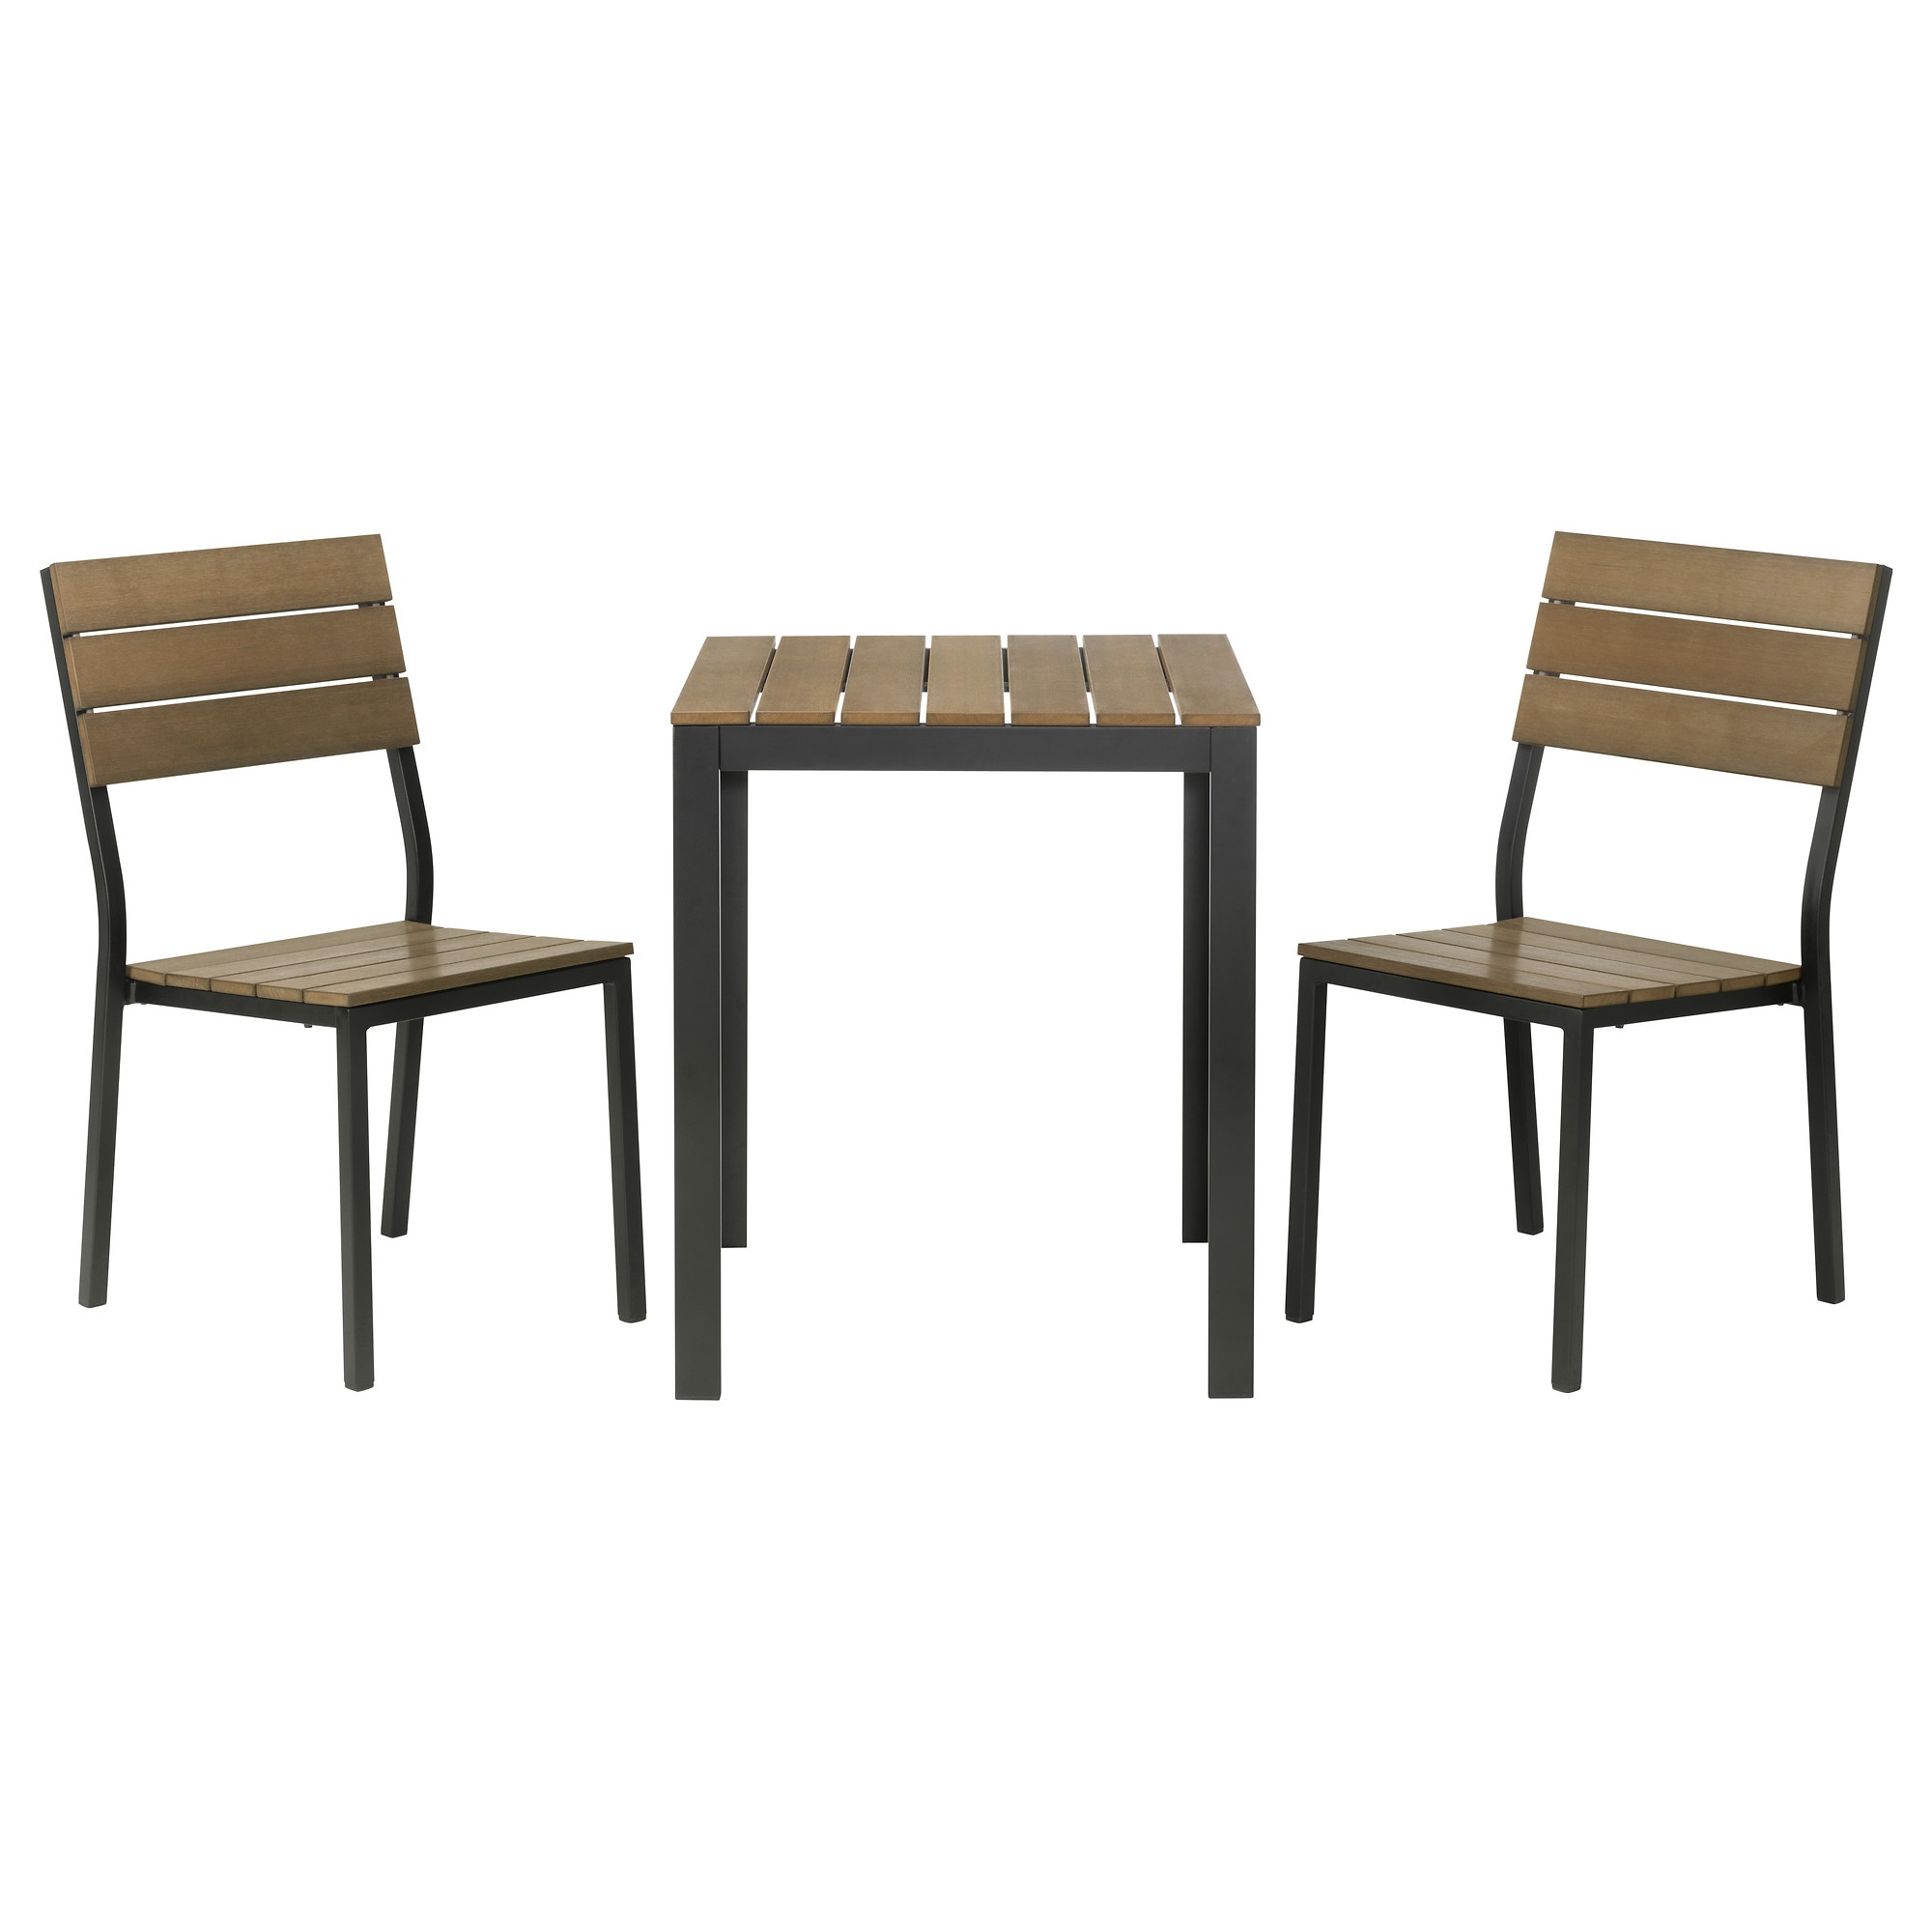 Outdoor table and chairs - Falster Table 2 Chairs Outdoor Black